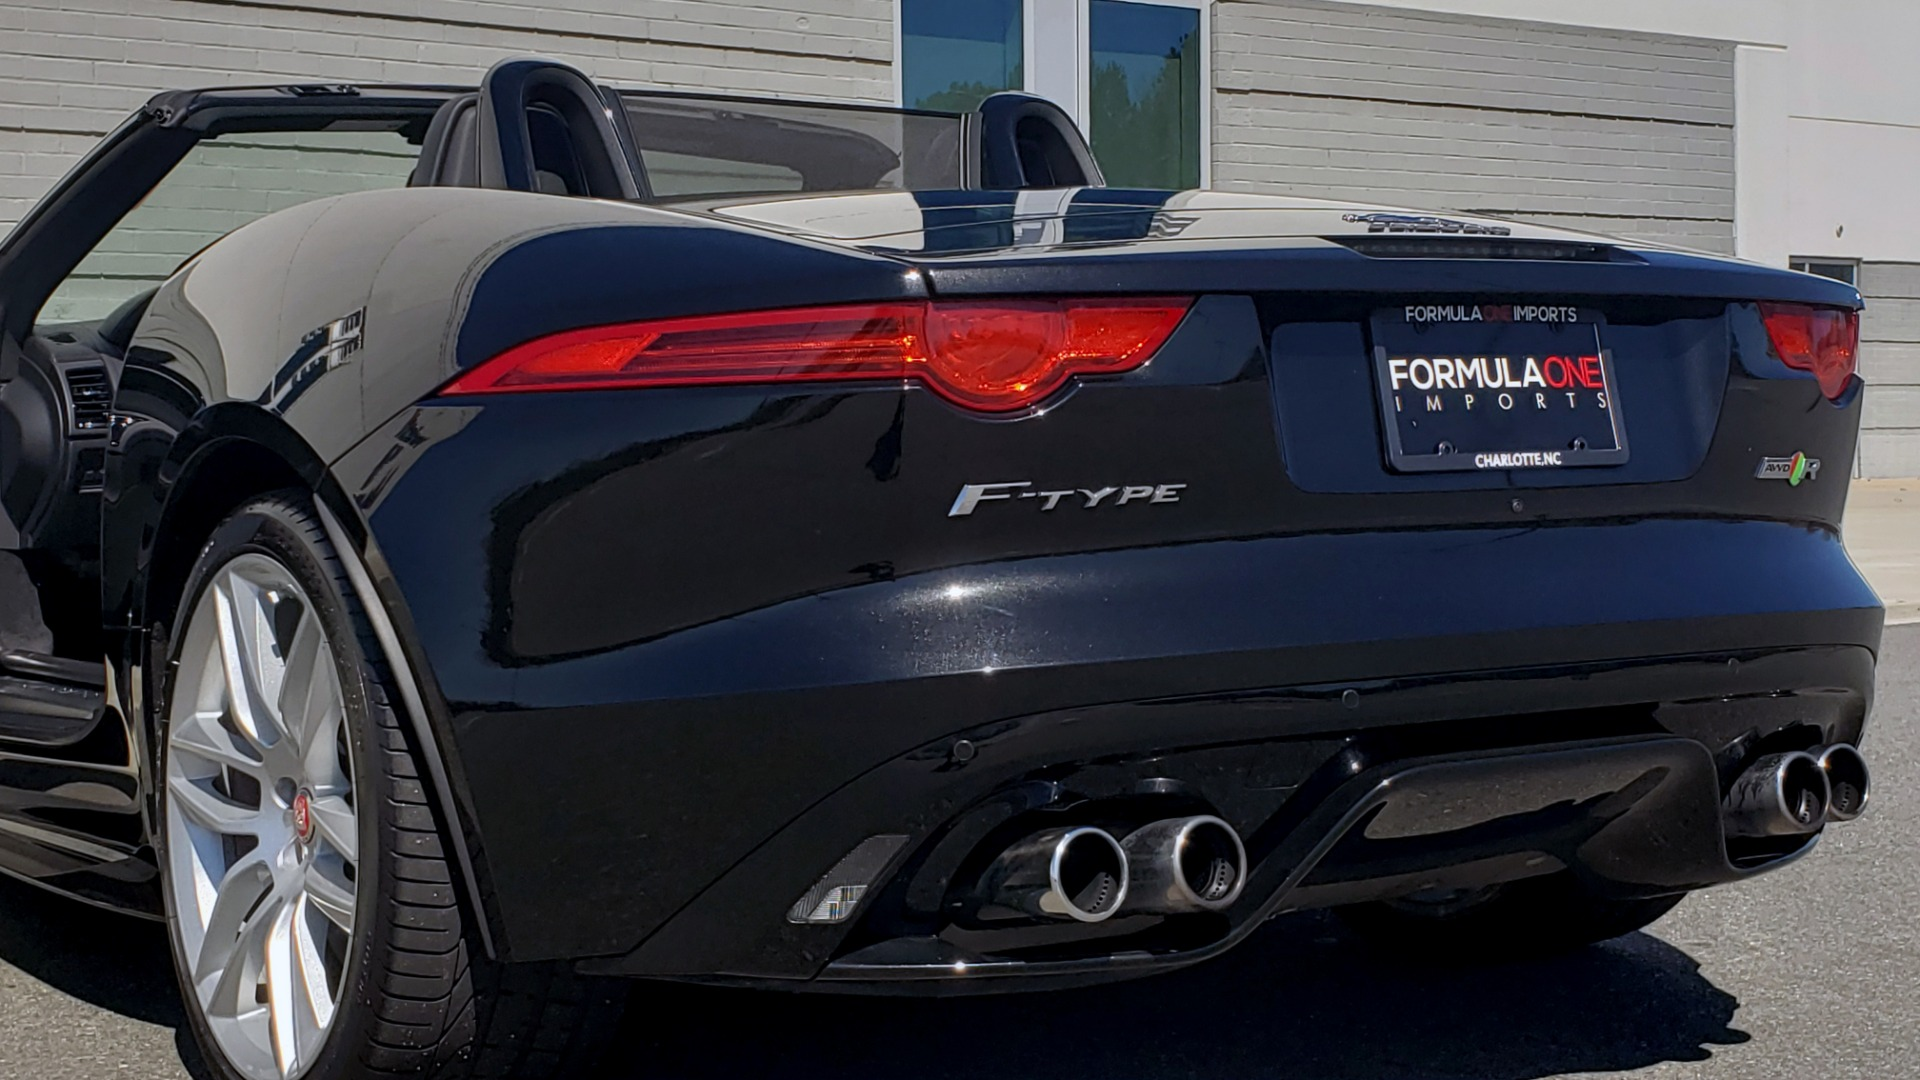 Used 2016 Jaguar F-TYPE R CONVERTIBLE / SC 5.0L 550HP / VISION PACK 3 / BSM / REARVIEW for sale $63,000 at Formula Imports in Charlotte NC 28227 76